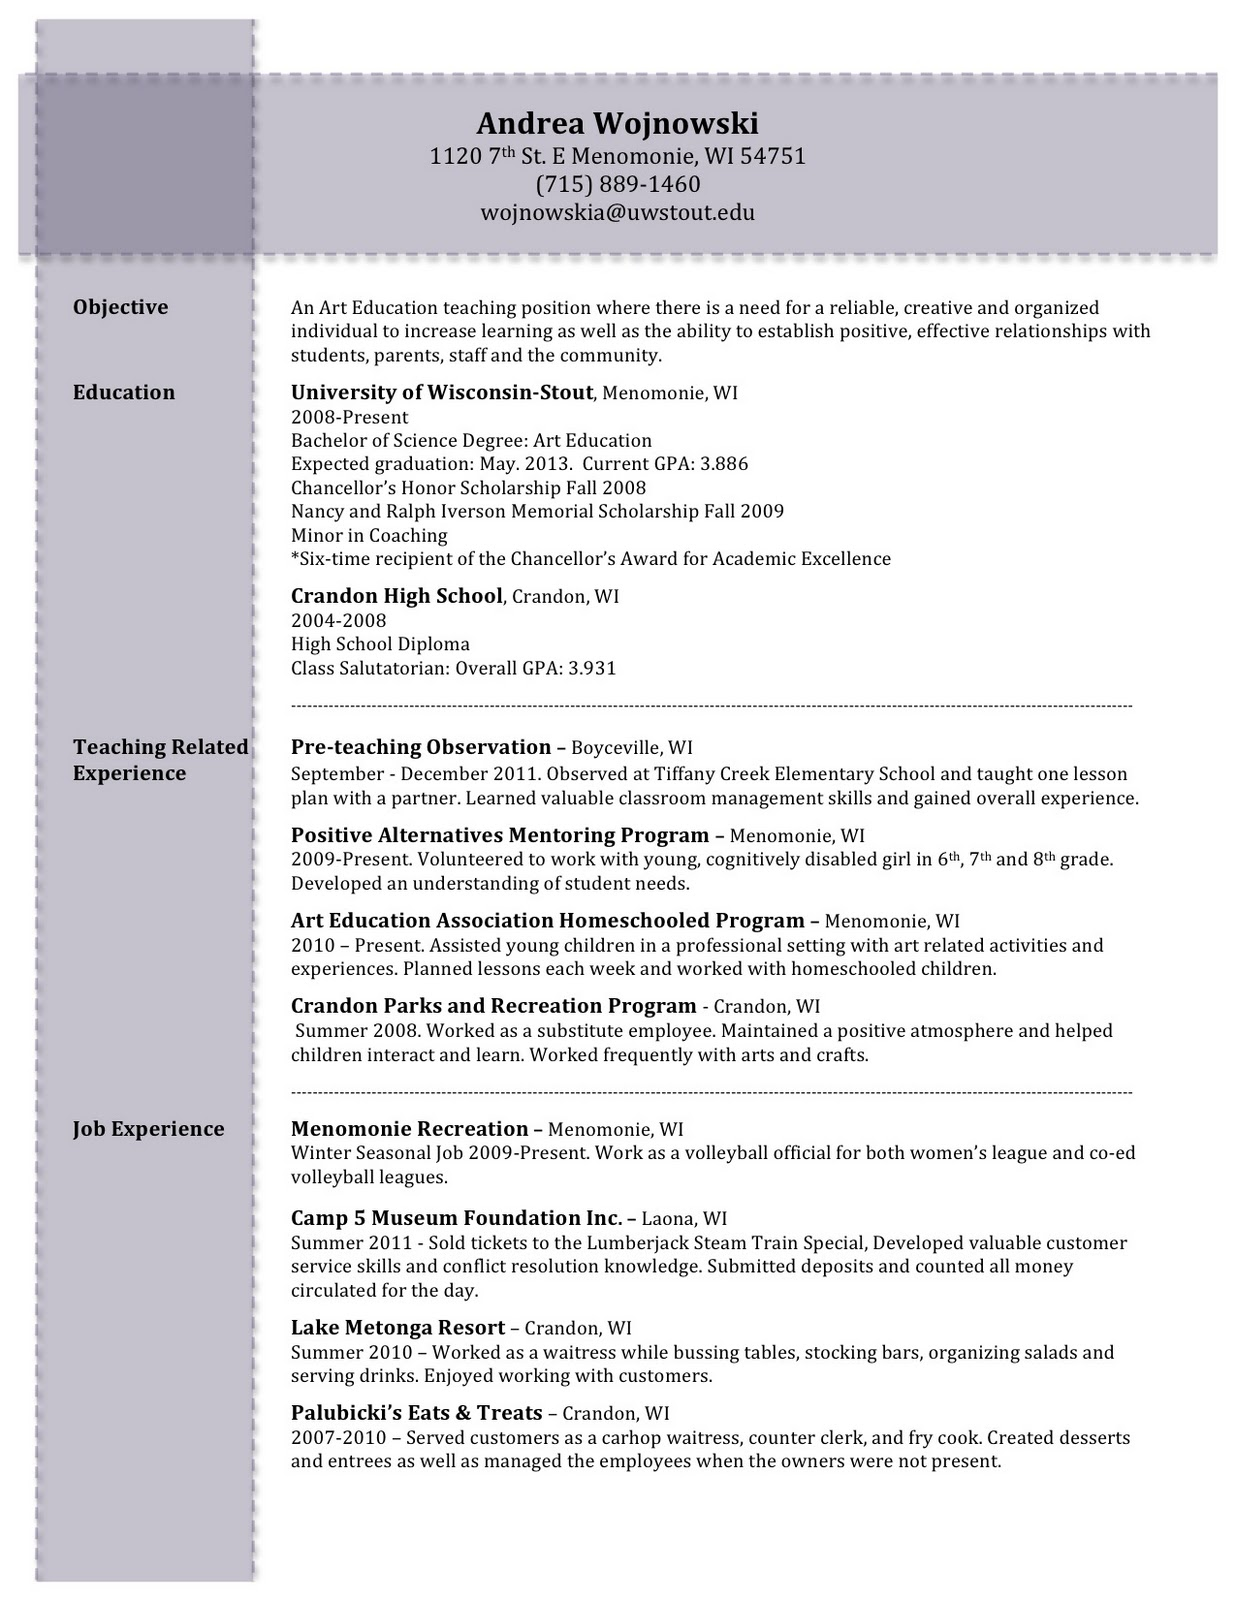 art education field experience  resume writing